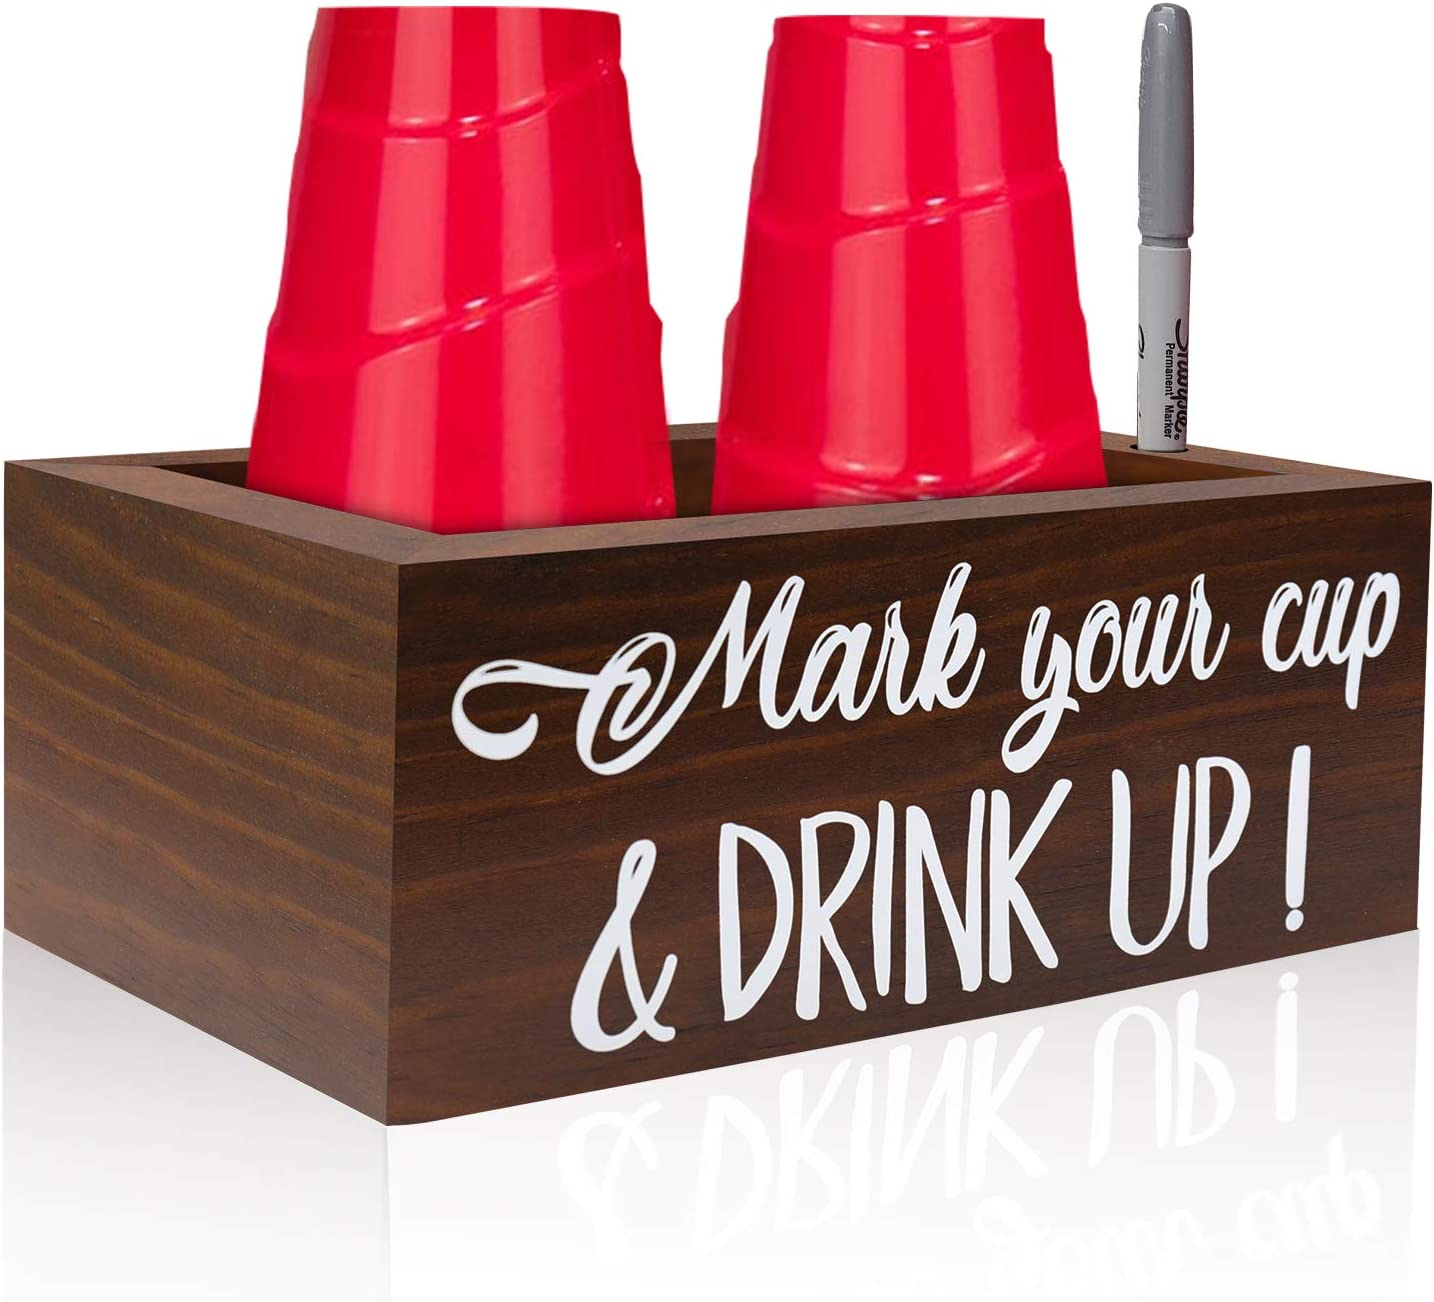 Amazon Com Double Brown Solo Disposable Cup Holder Drink Caddy Party Cup Holder Dispenser Wooden Organizer Storage Marker Holder Mark Your Cup And Drink Up Rustic Farmhouse Bar Party Decor Toys Games